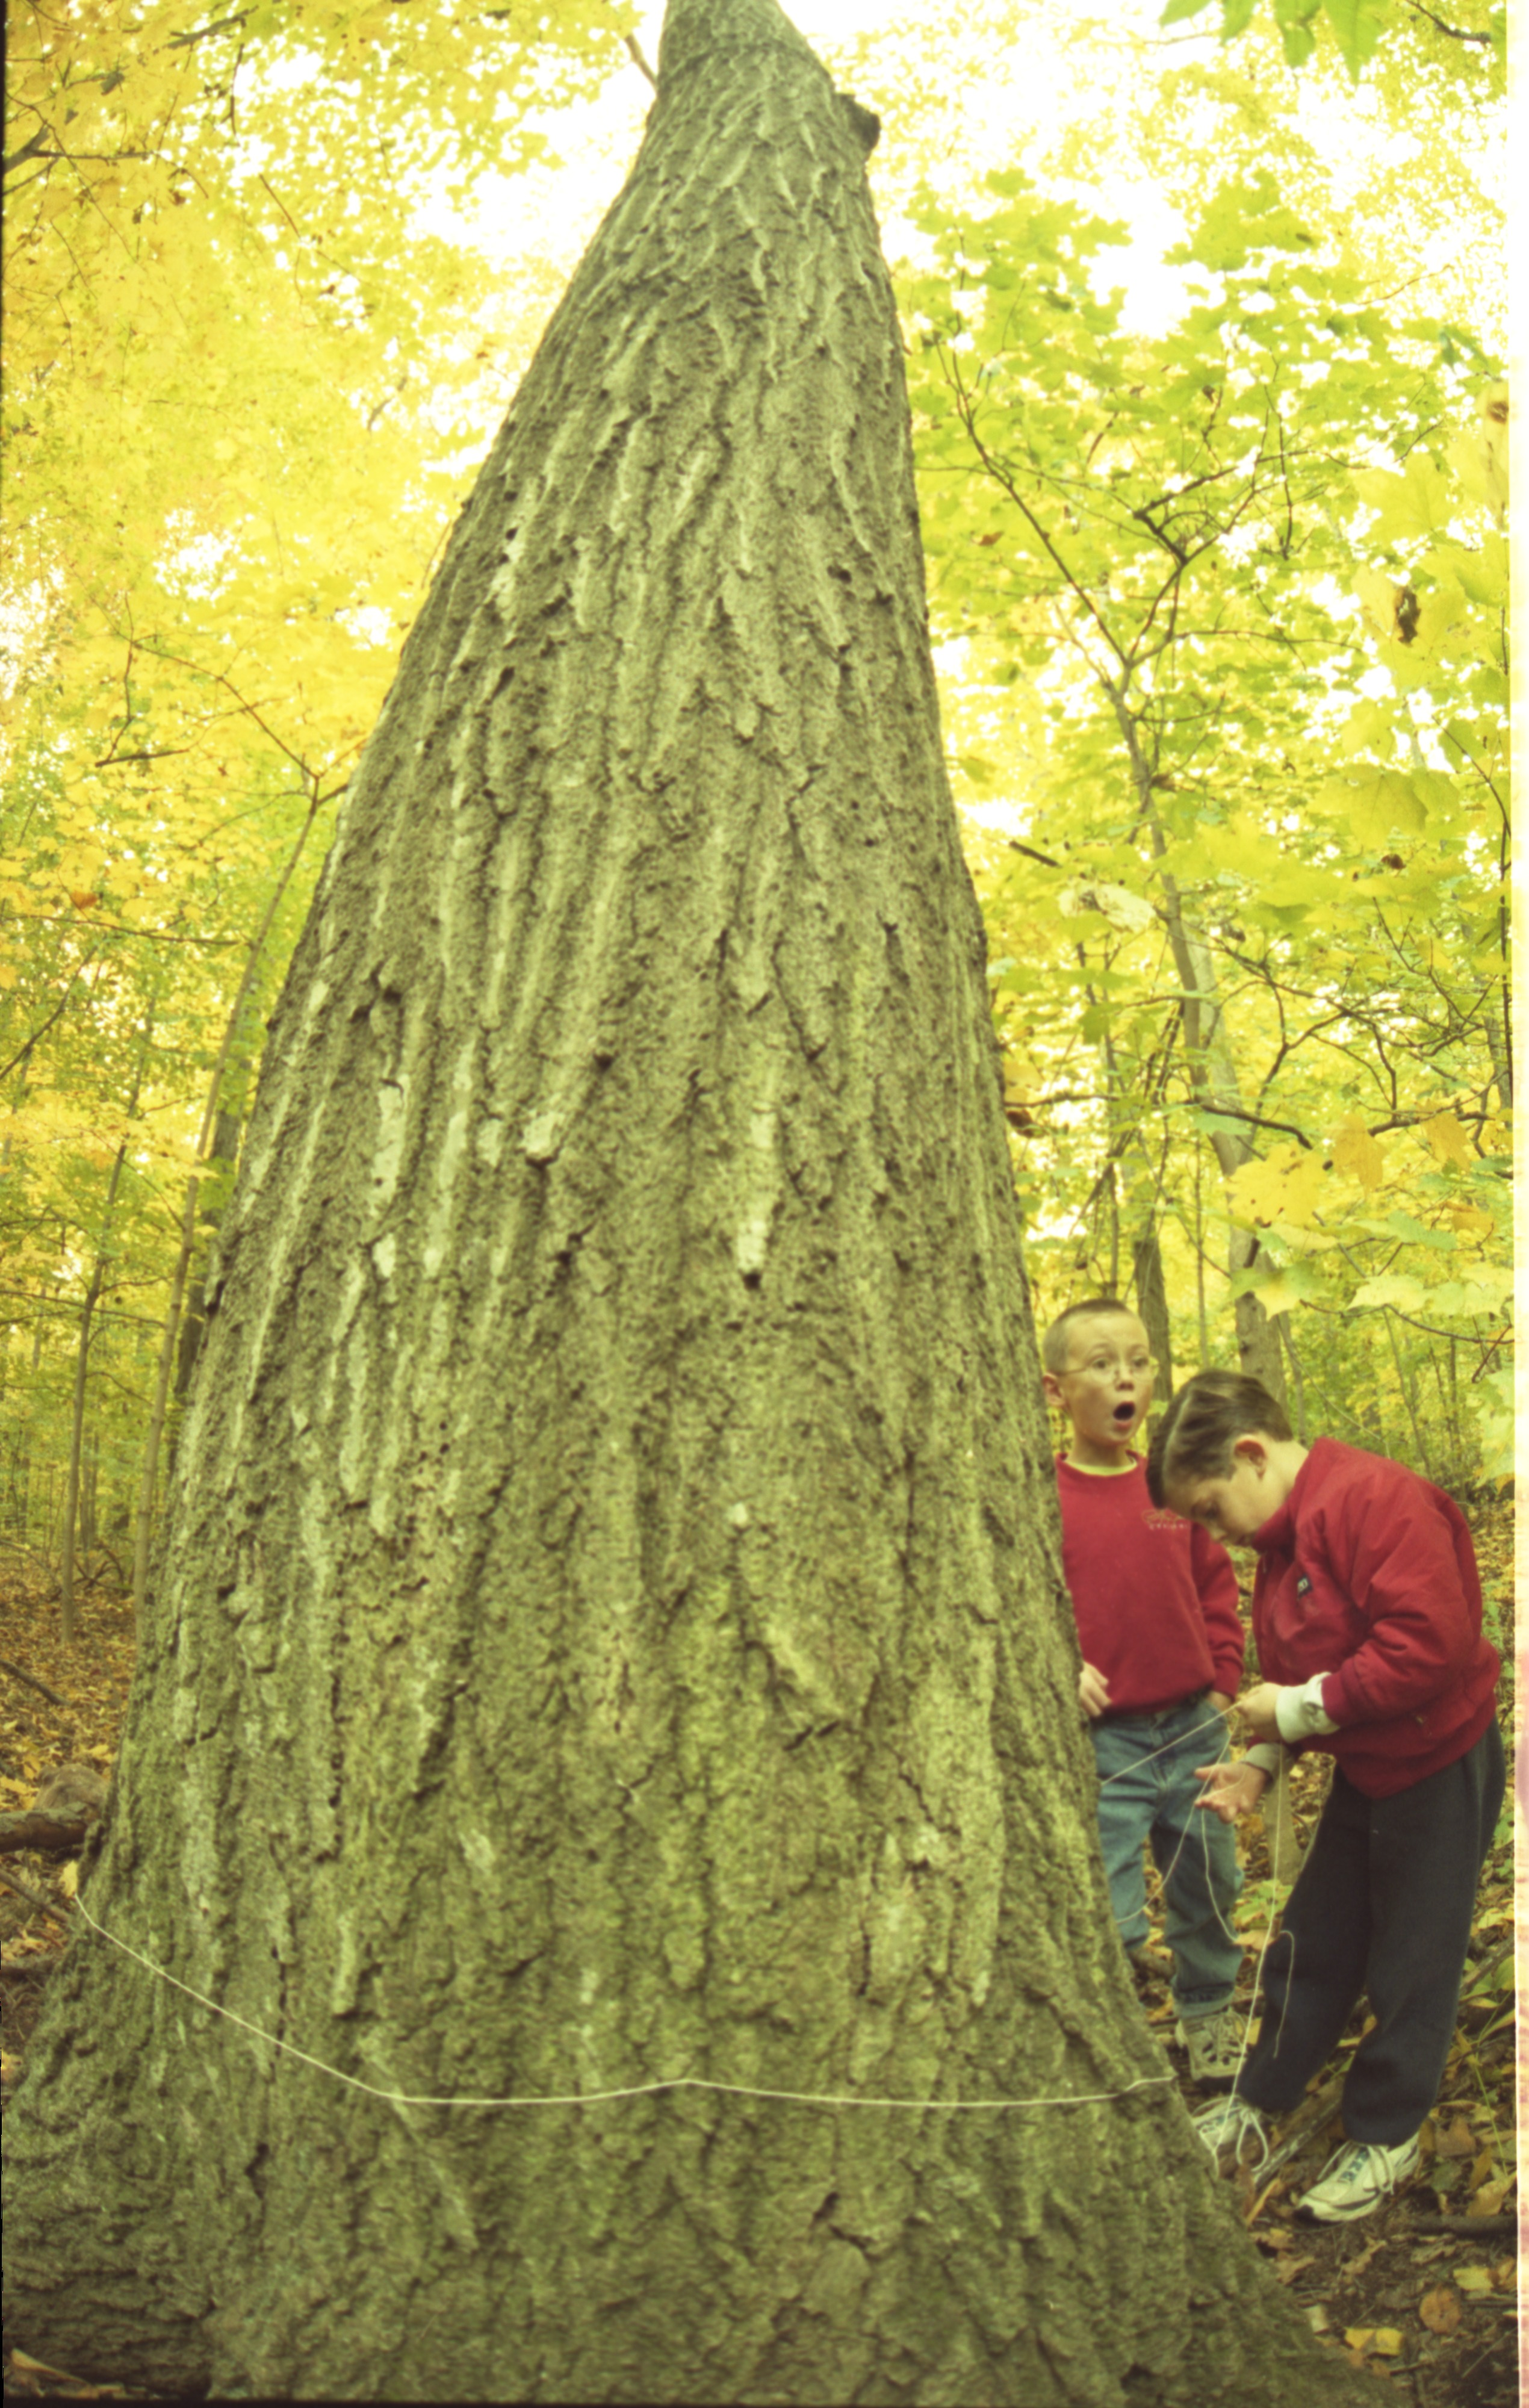 Eberwhite School Forestry Club Tags Trees Killed By Gypsy Moths In Eberwhite Woods, October 1999 image